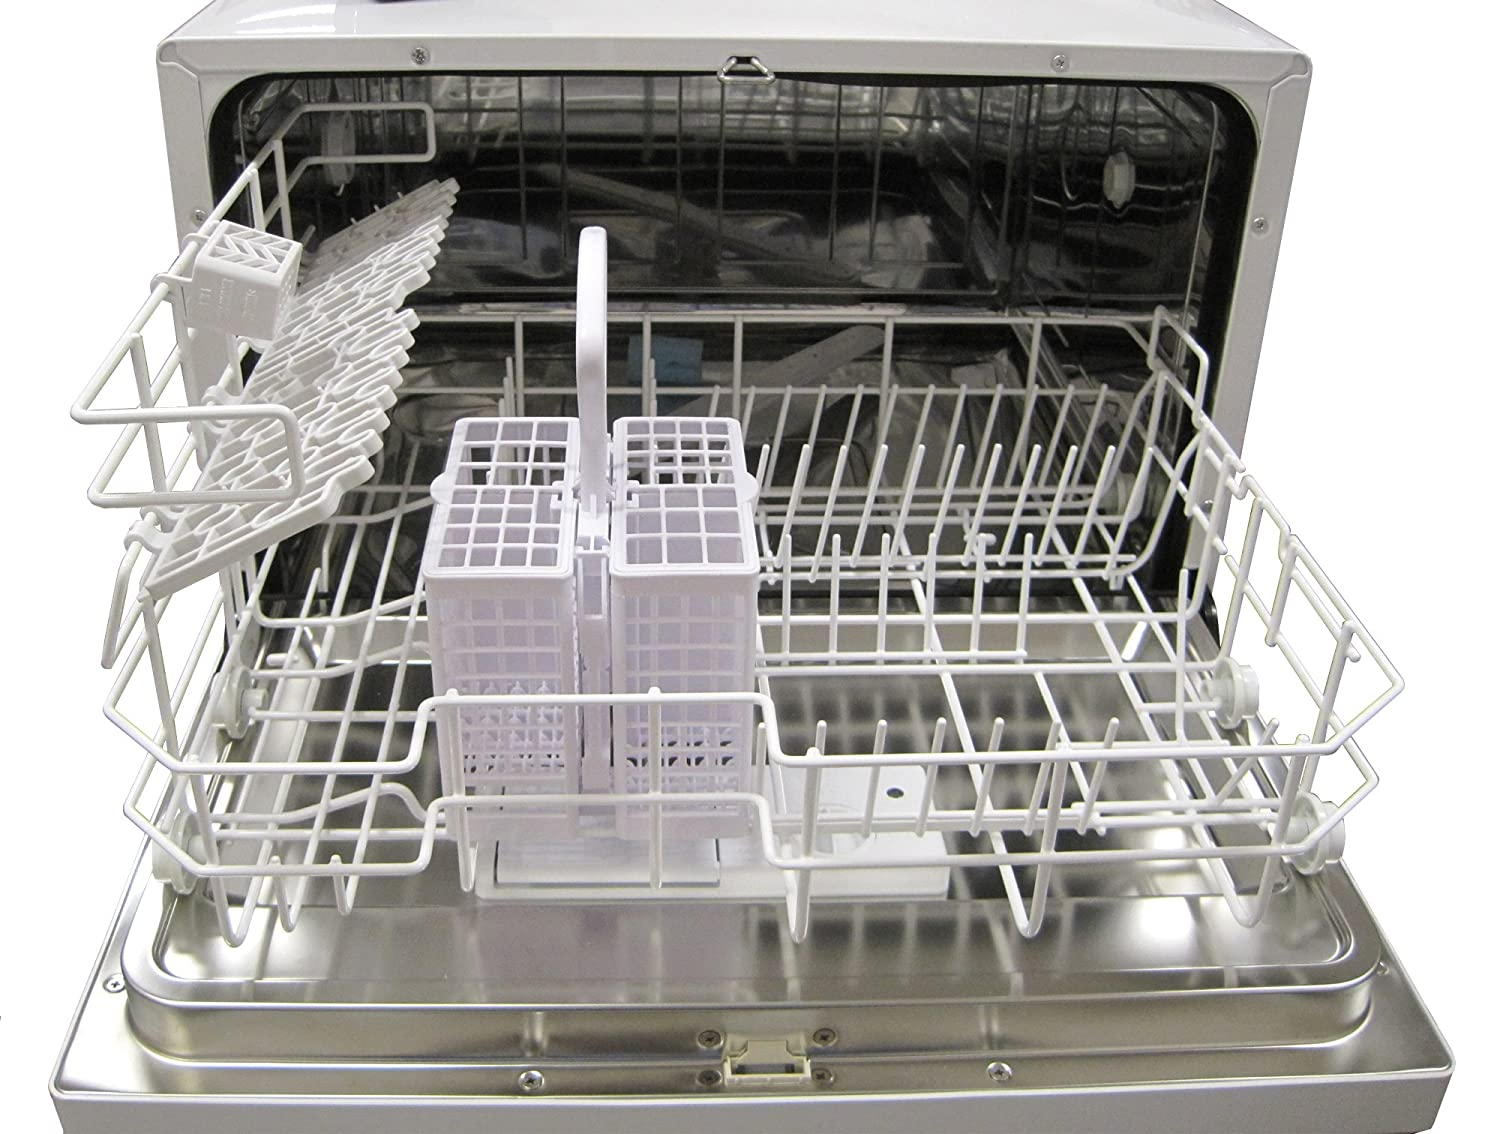 Mini Dishwashers Amazoncom Spt Countertop Dishwasher Silver Appliances